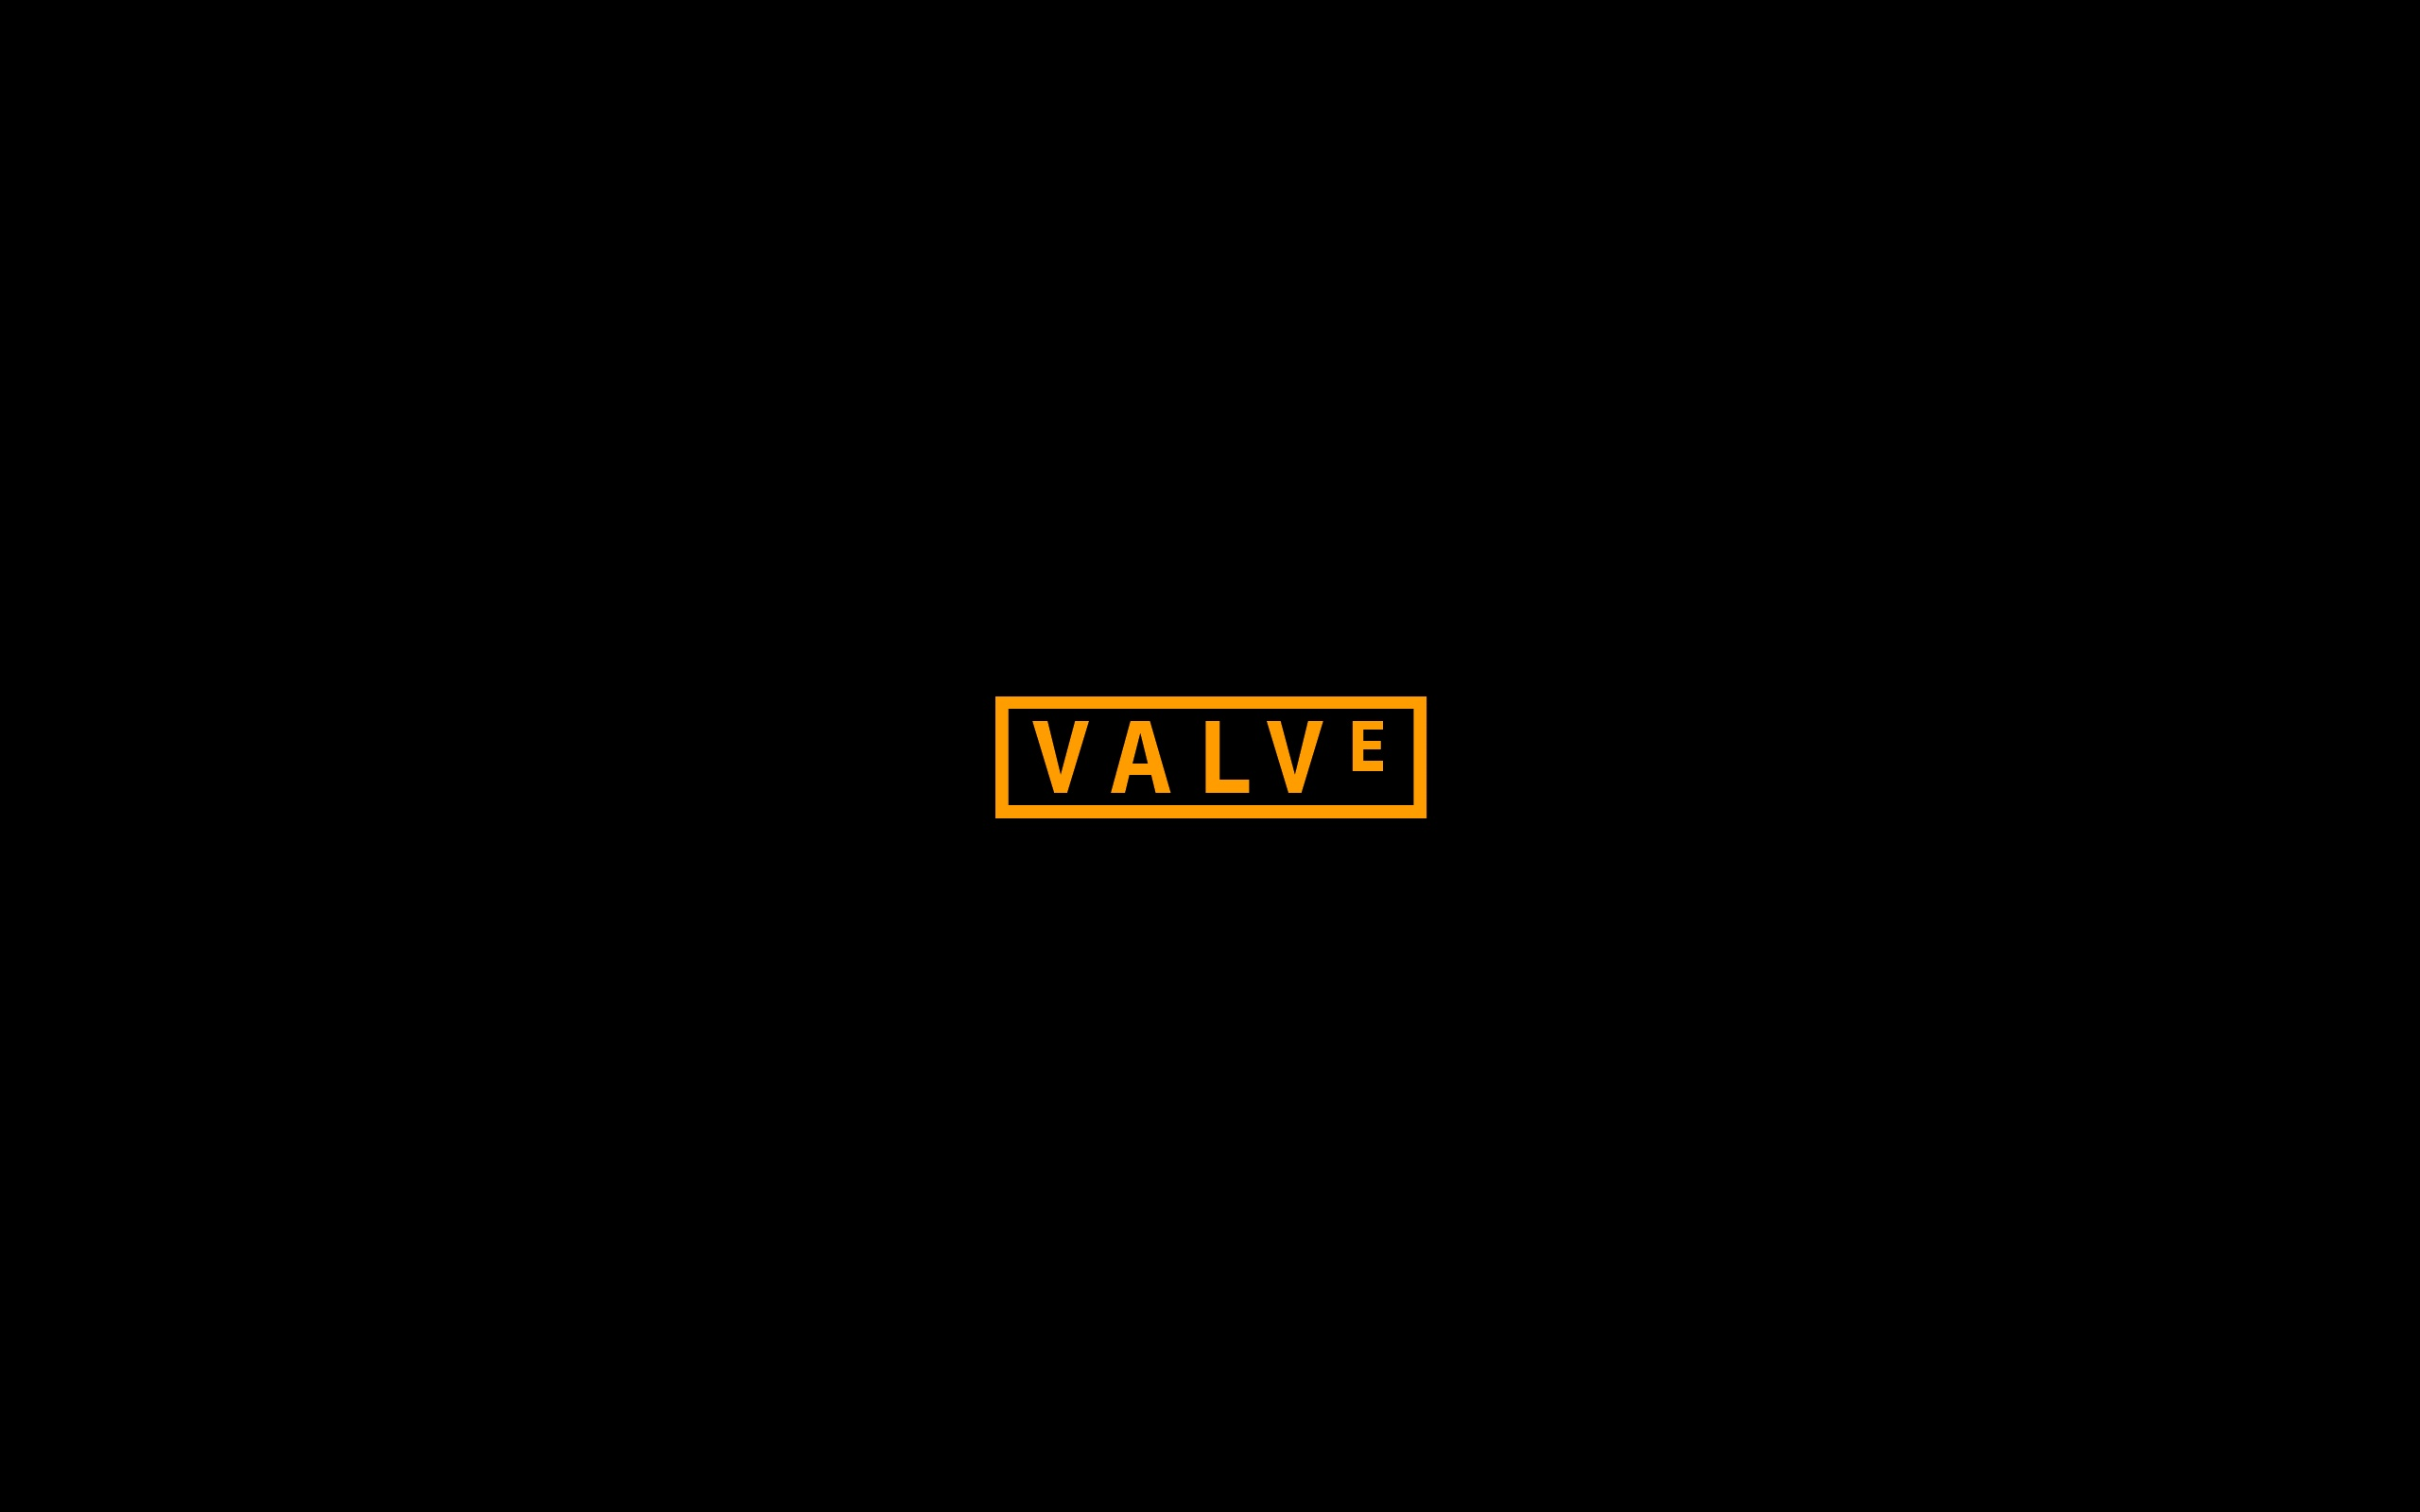 Valve Logo Wallpaper